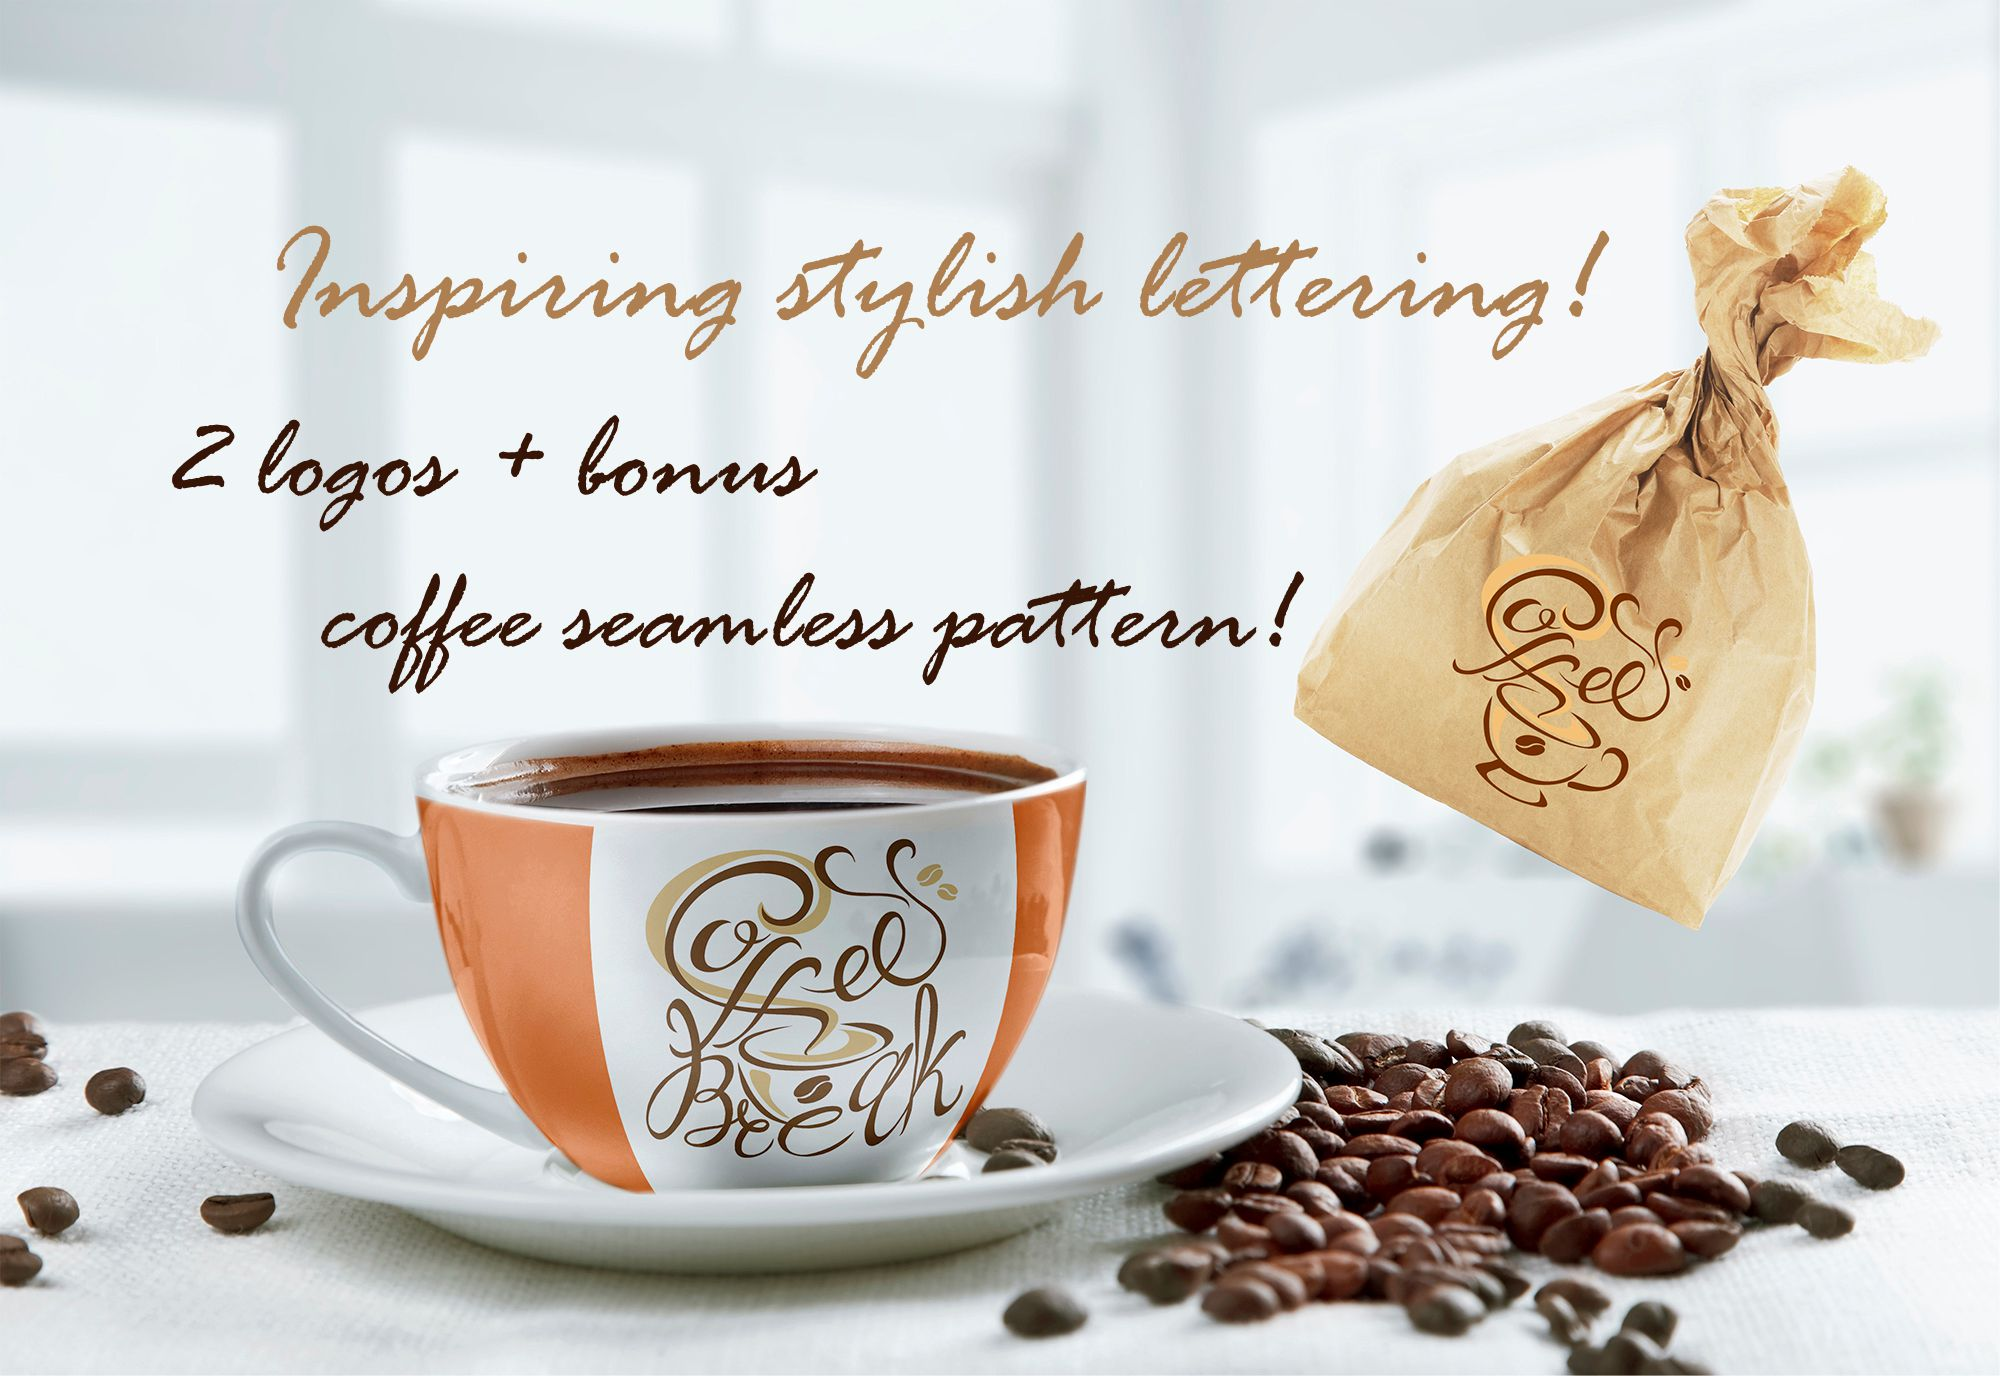 Inspiring Stylish Lettering on the Theme of Coffee. Logotypes. Bonus Seamless Pattern. Graphic Illustrations By grigaola